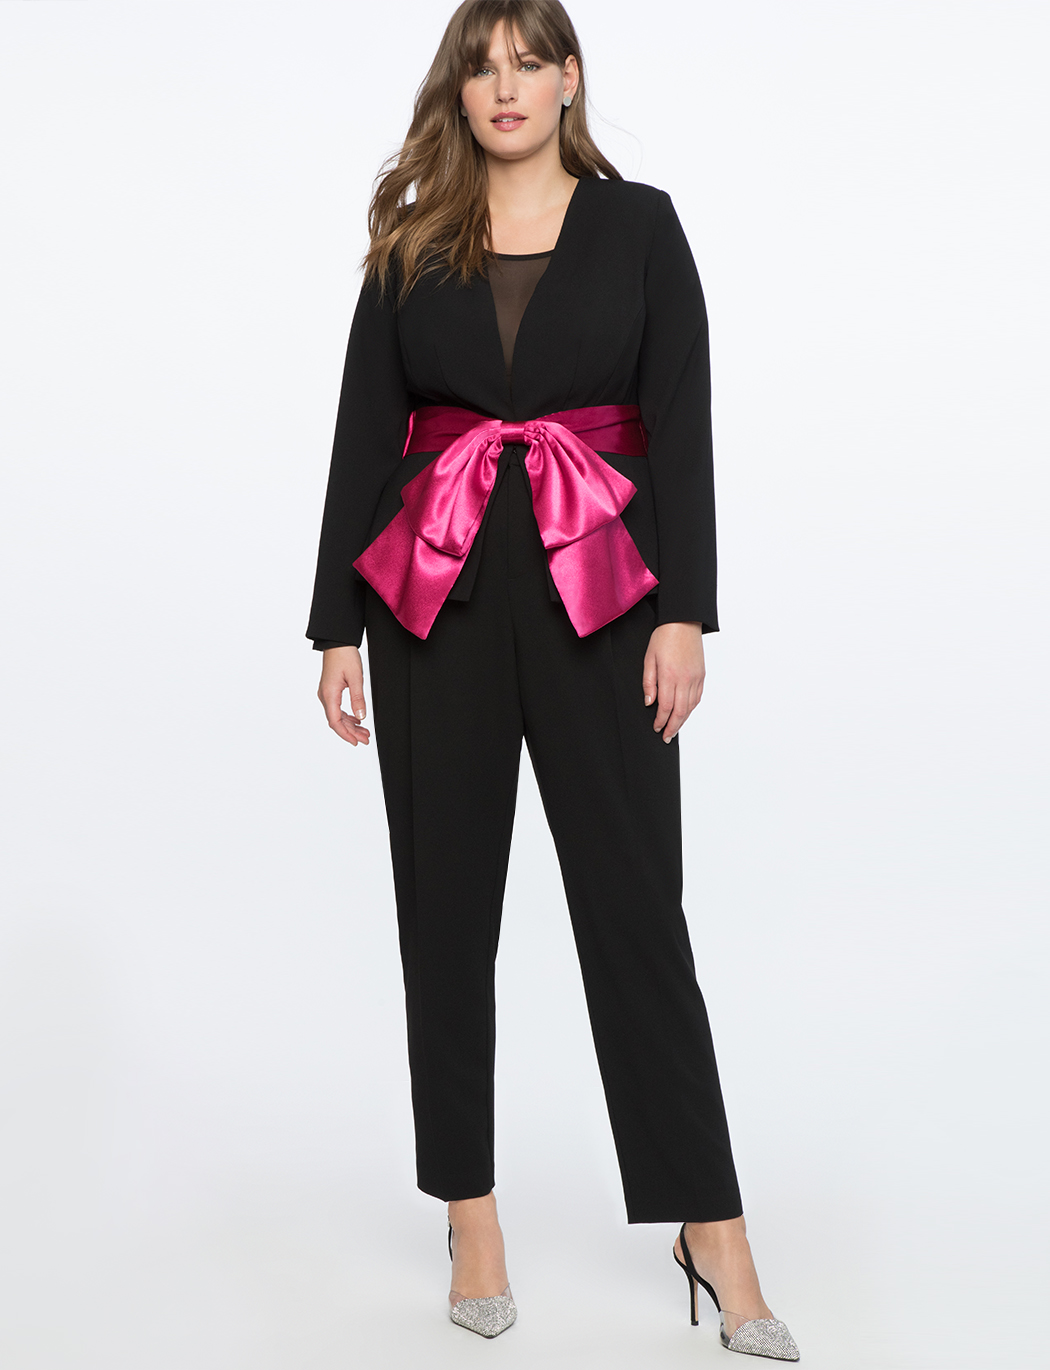 Peplum Blazer With Satin Bow